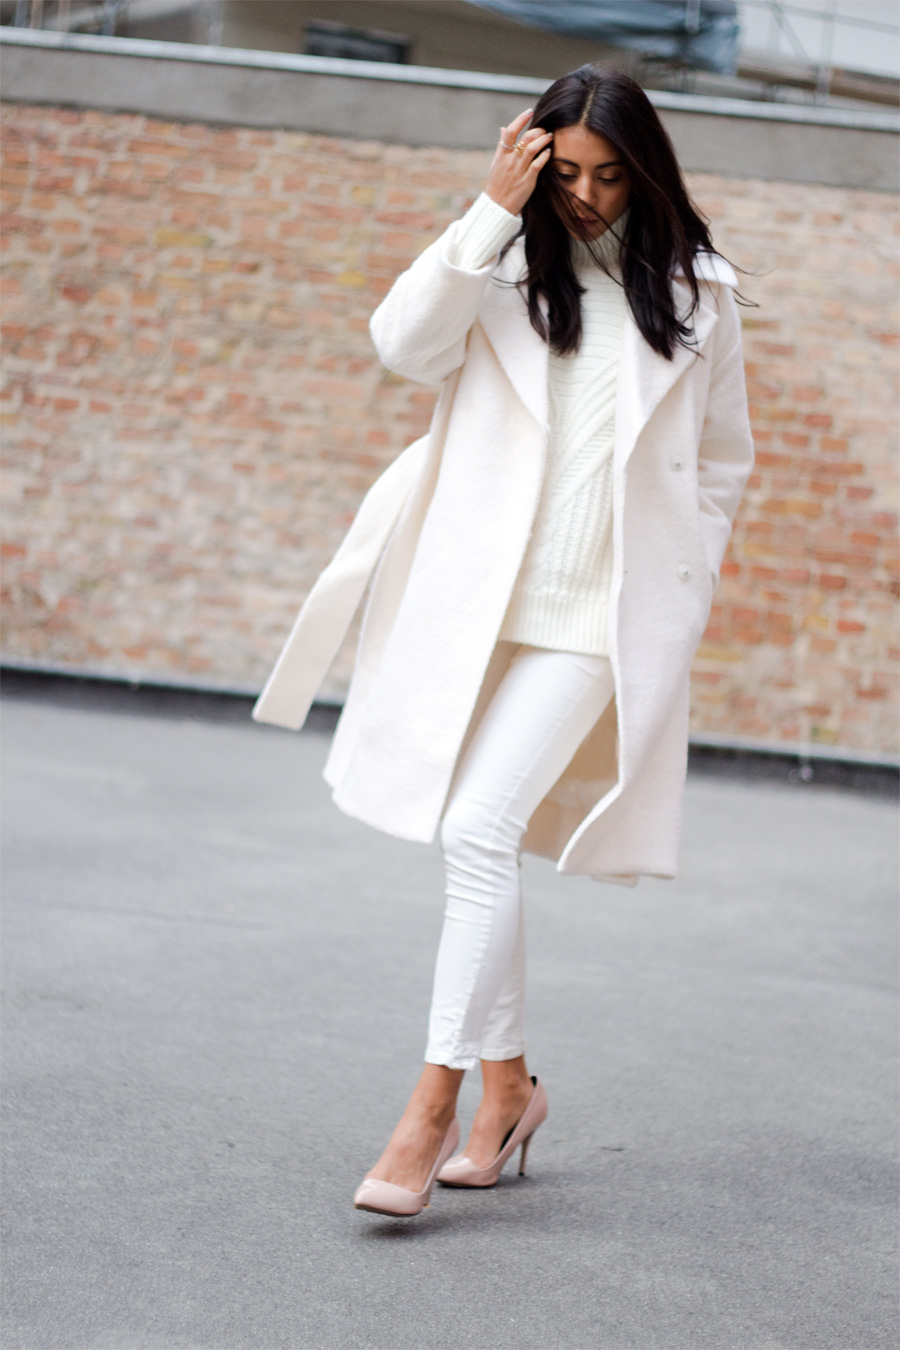 Belted Coat Trend: Kayla Seah is wearing all white, the belted coat is from ASOS